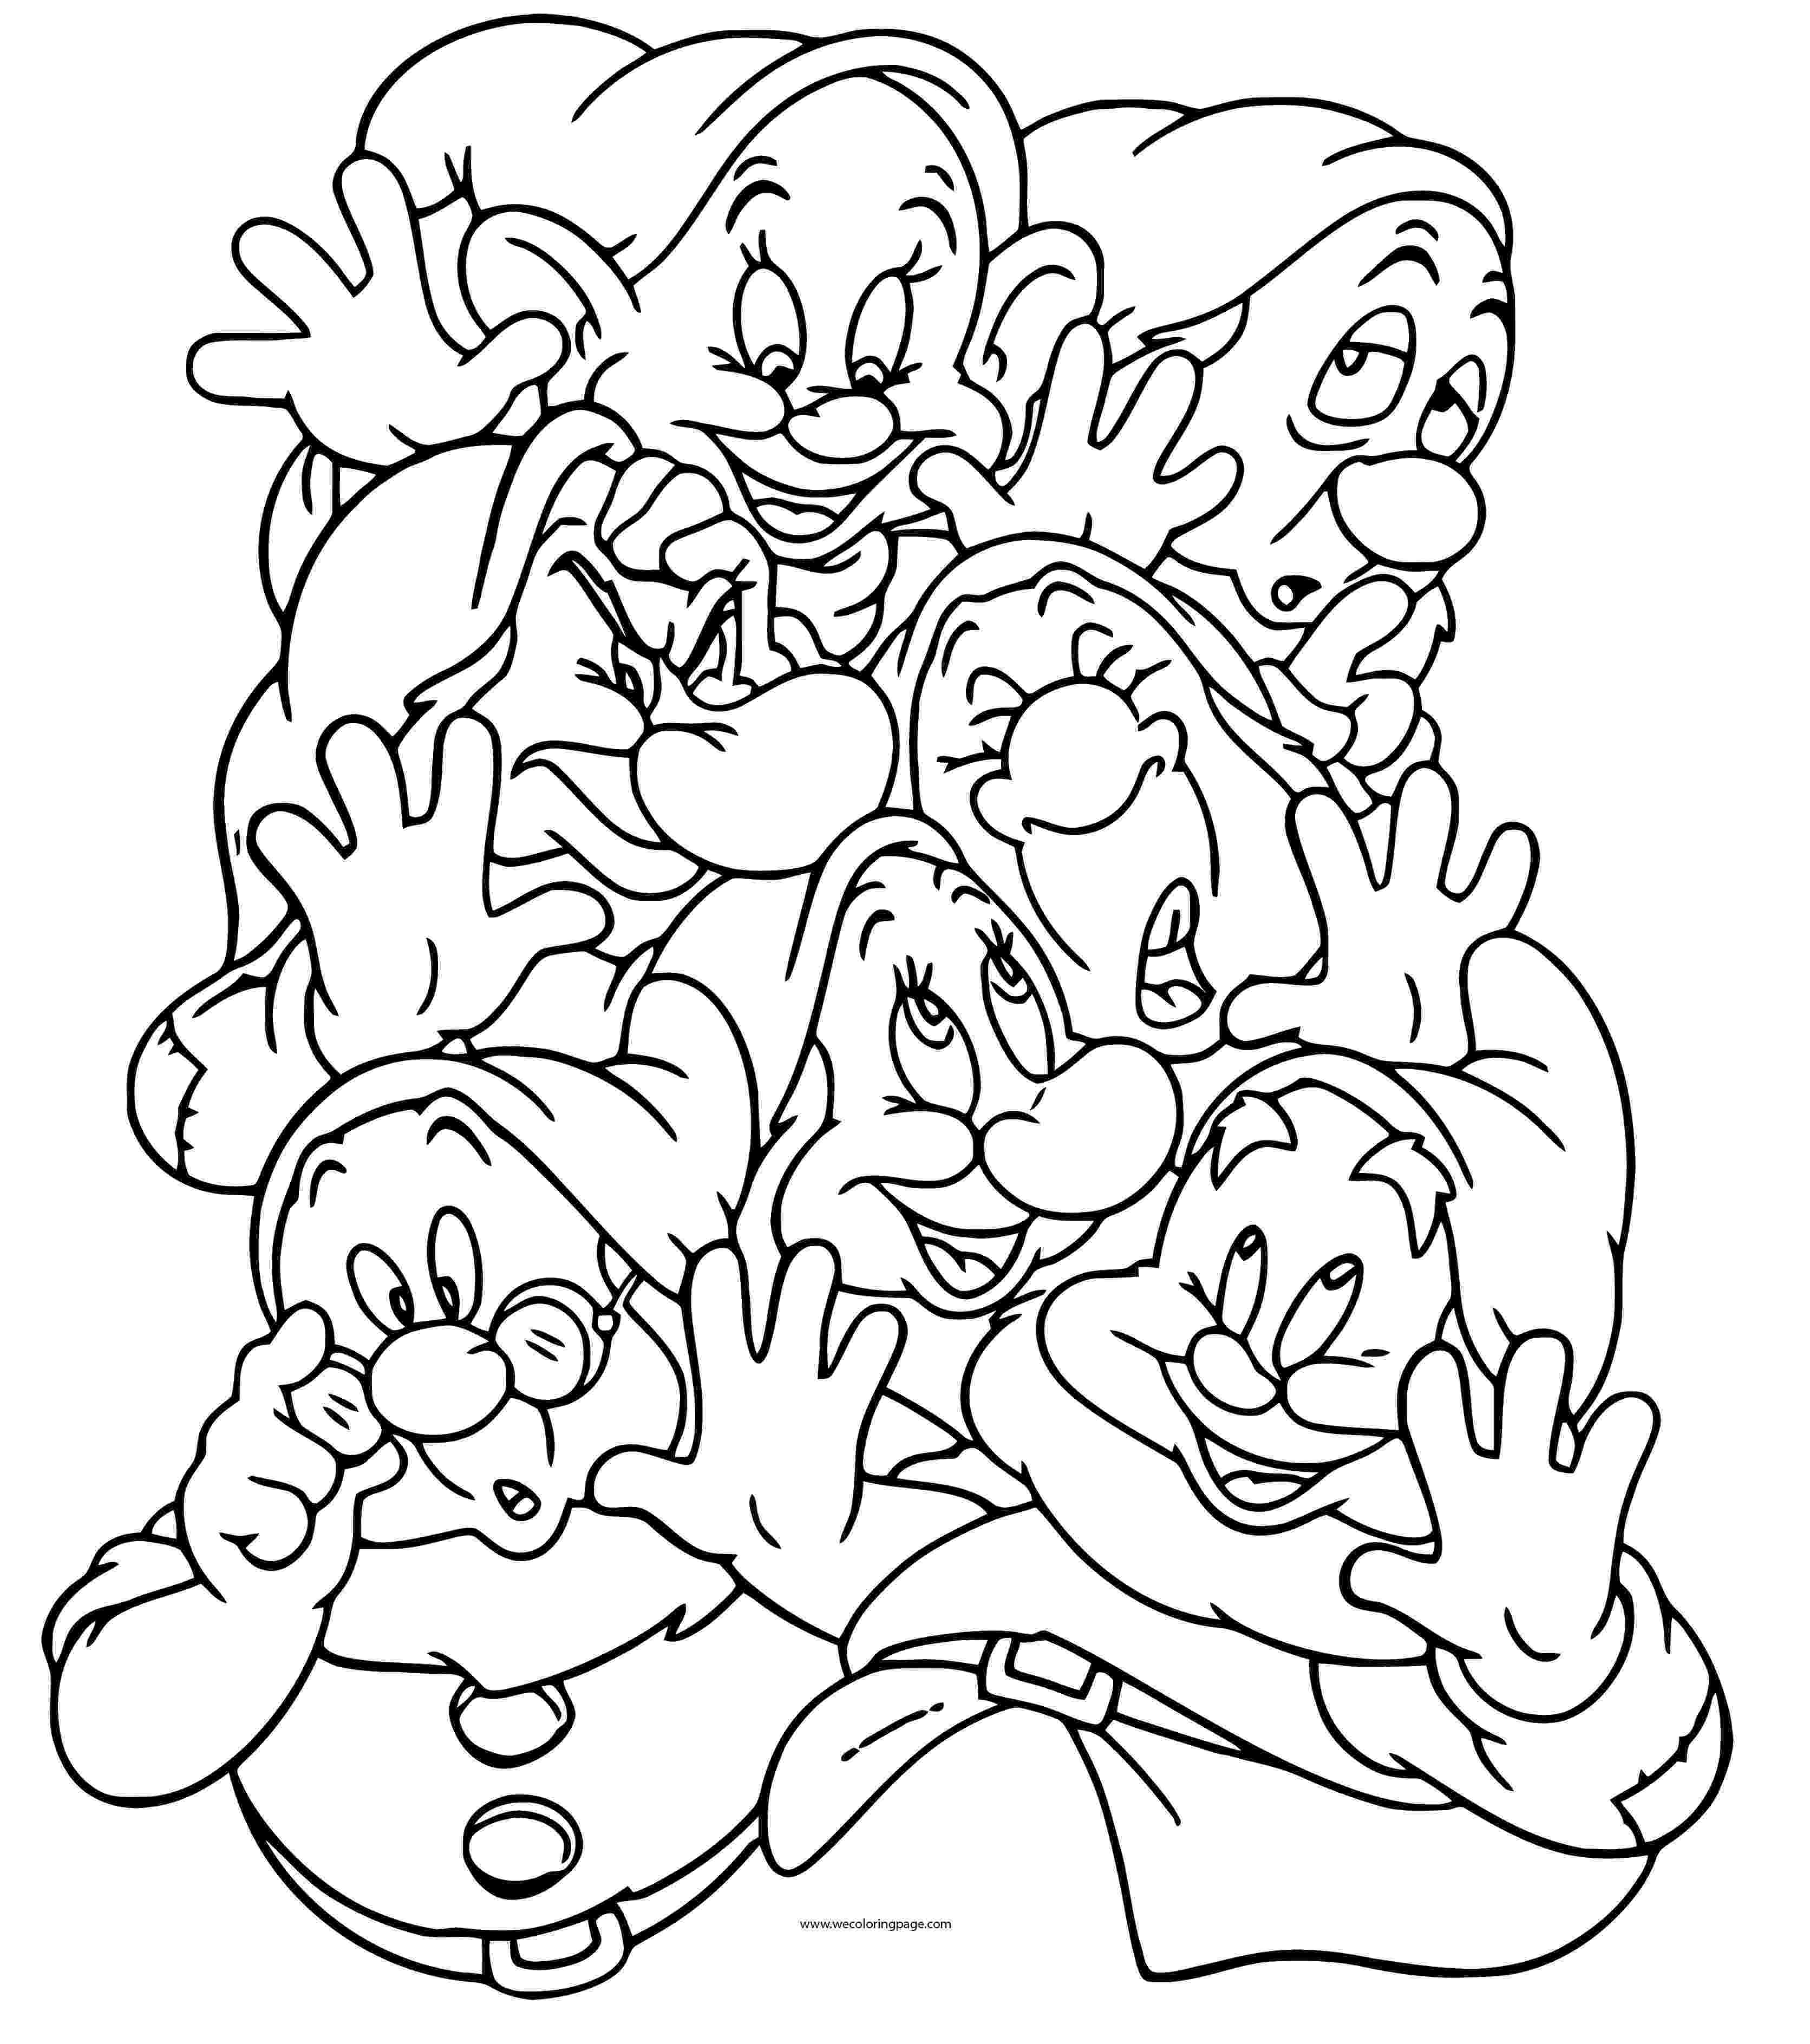 snow white and seven dwarfs coloring pages snow white with her prince coloring pages hellokidscom and pages coloring seven dwarfs snow white